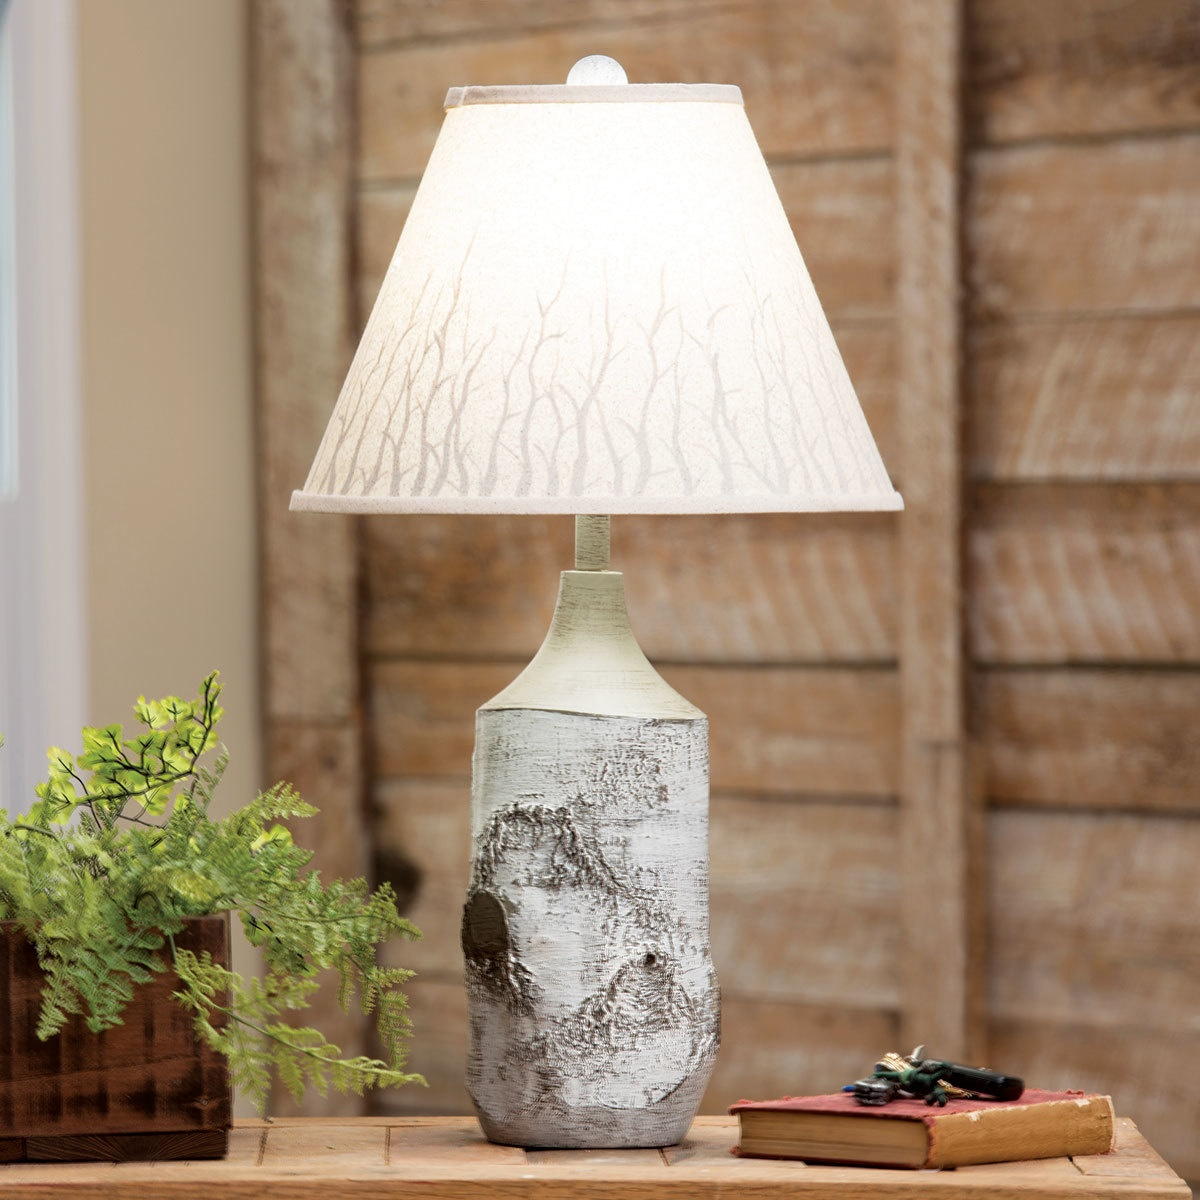 rustic lamps cabin lighting black forest decor winter birch table lamp frosted glass cylinder accent halloween quilted runner patterns rechargeable battery powered dining room